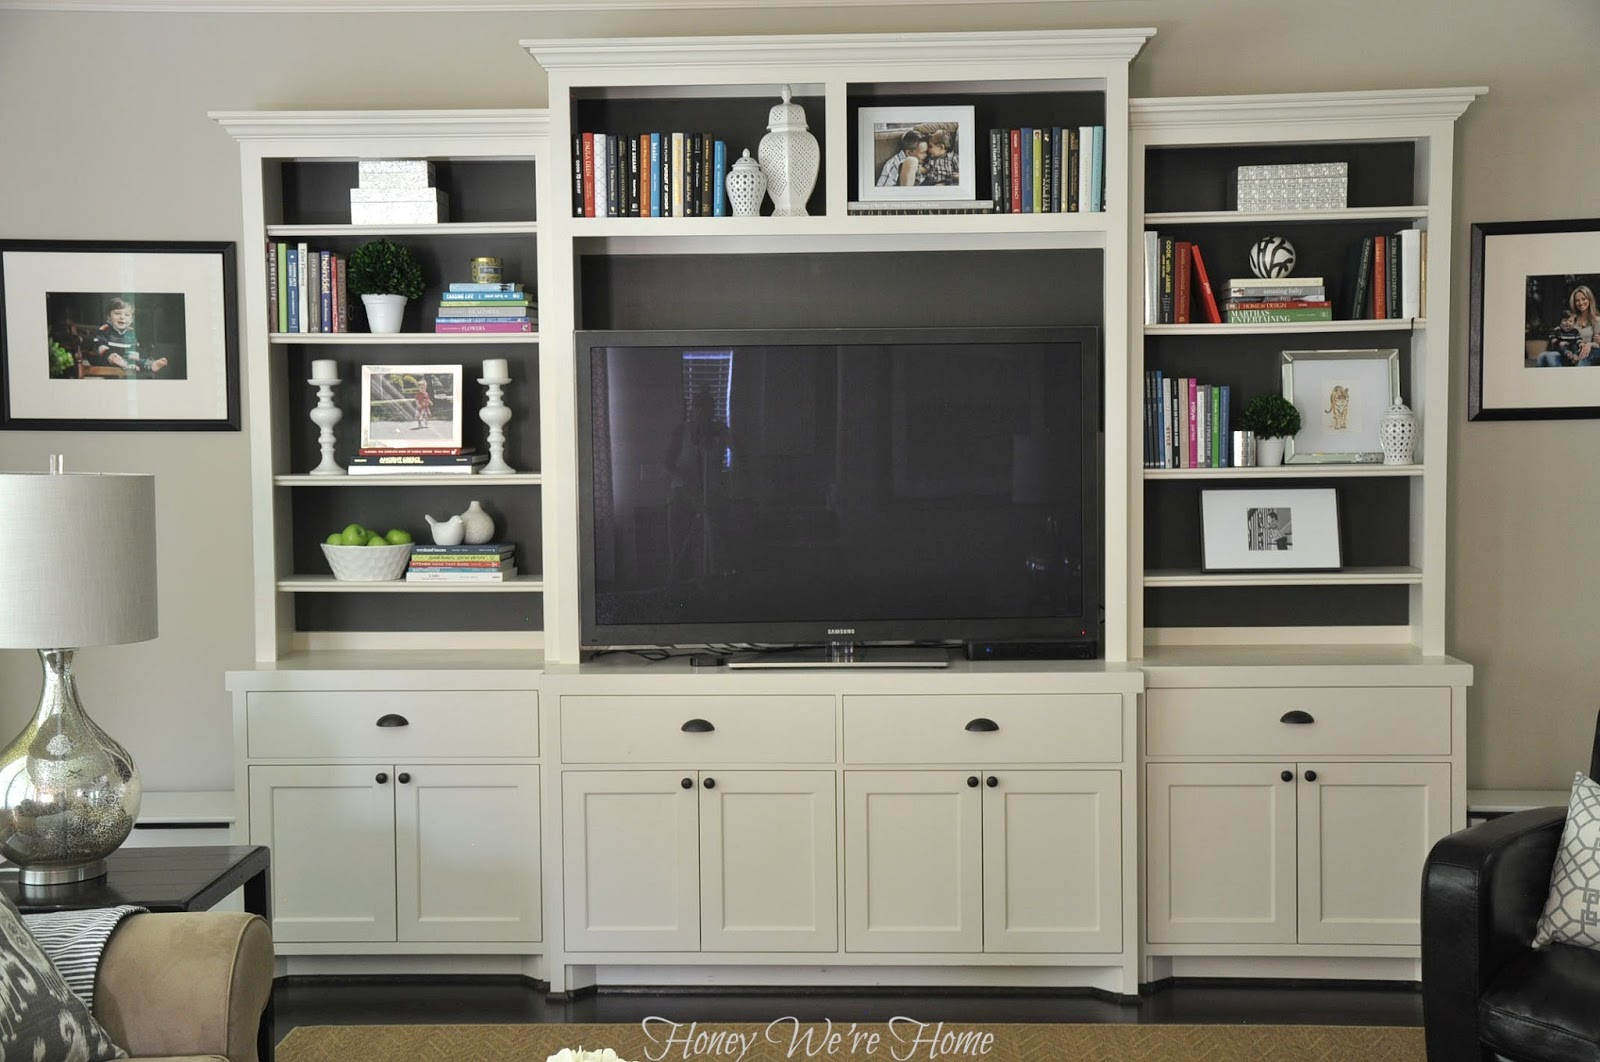 Painted Media Cabinet  Bookshelf Styling  Honey Were Home